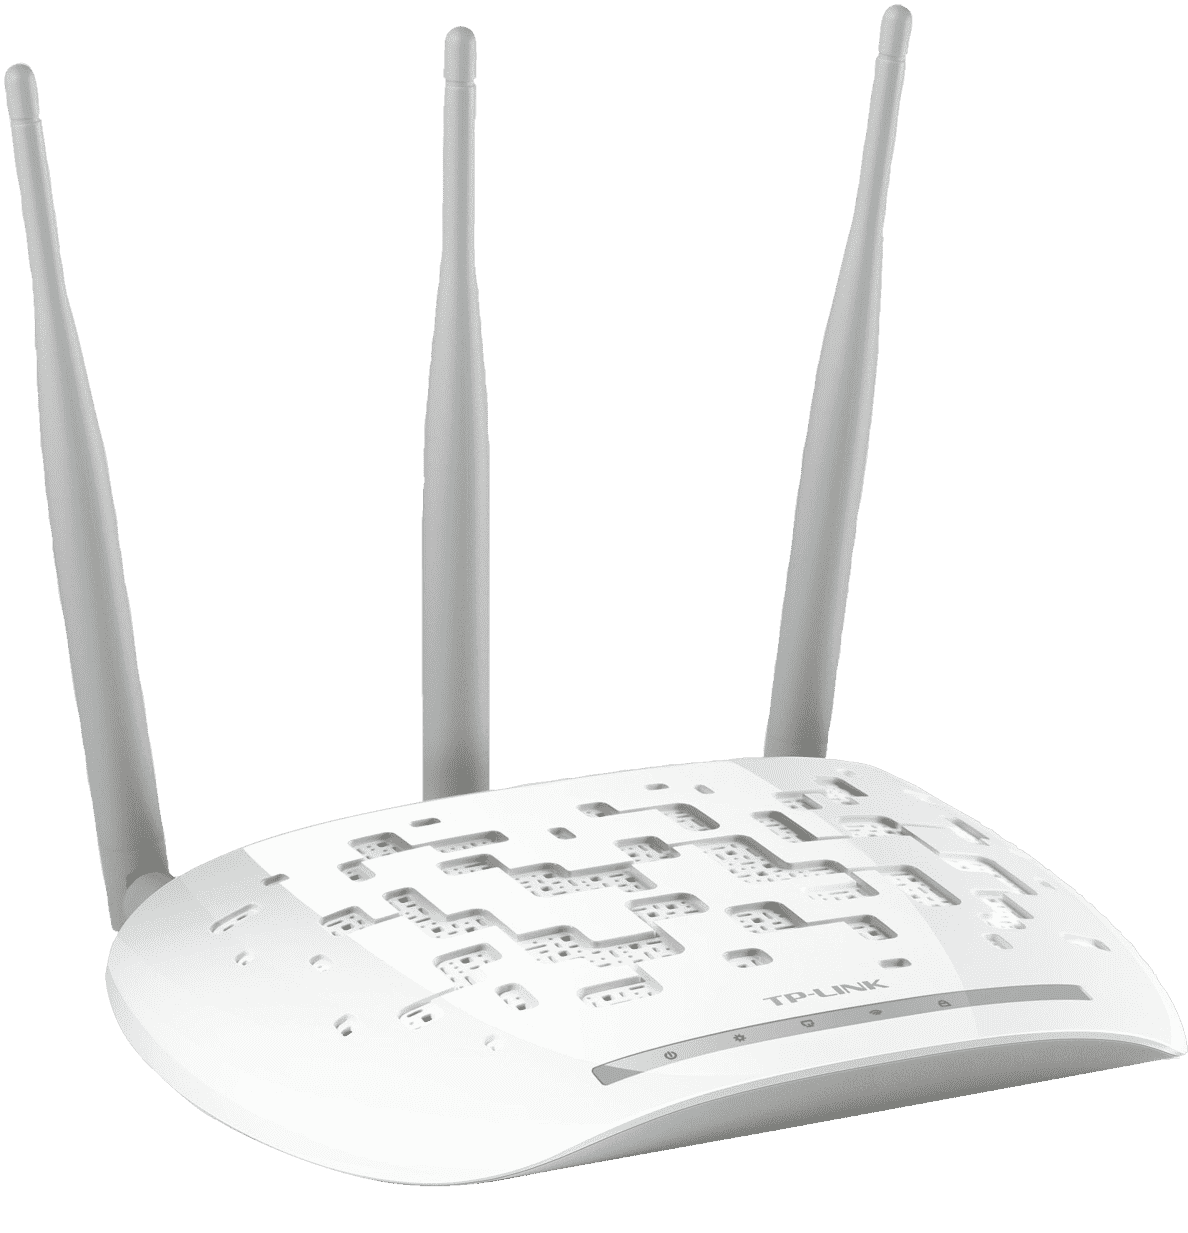 TP-LINK TL-WA901ND V4 WLAN-Access-Point Weiß